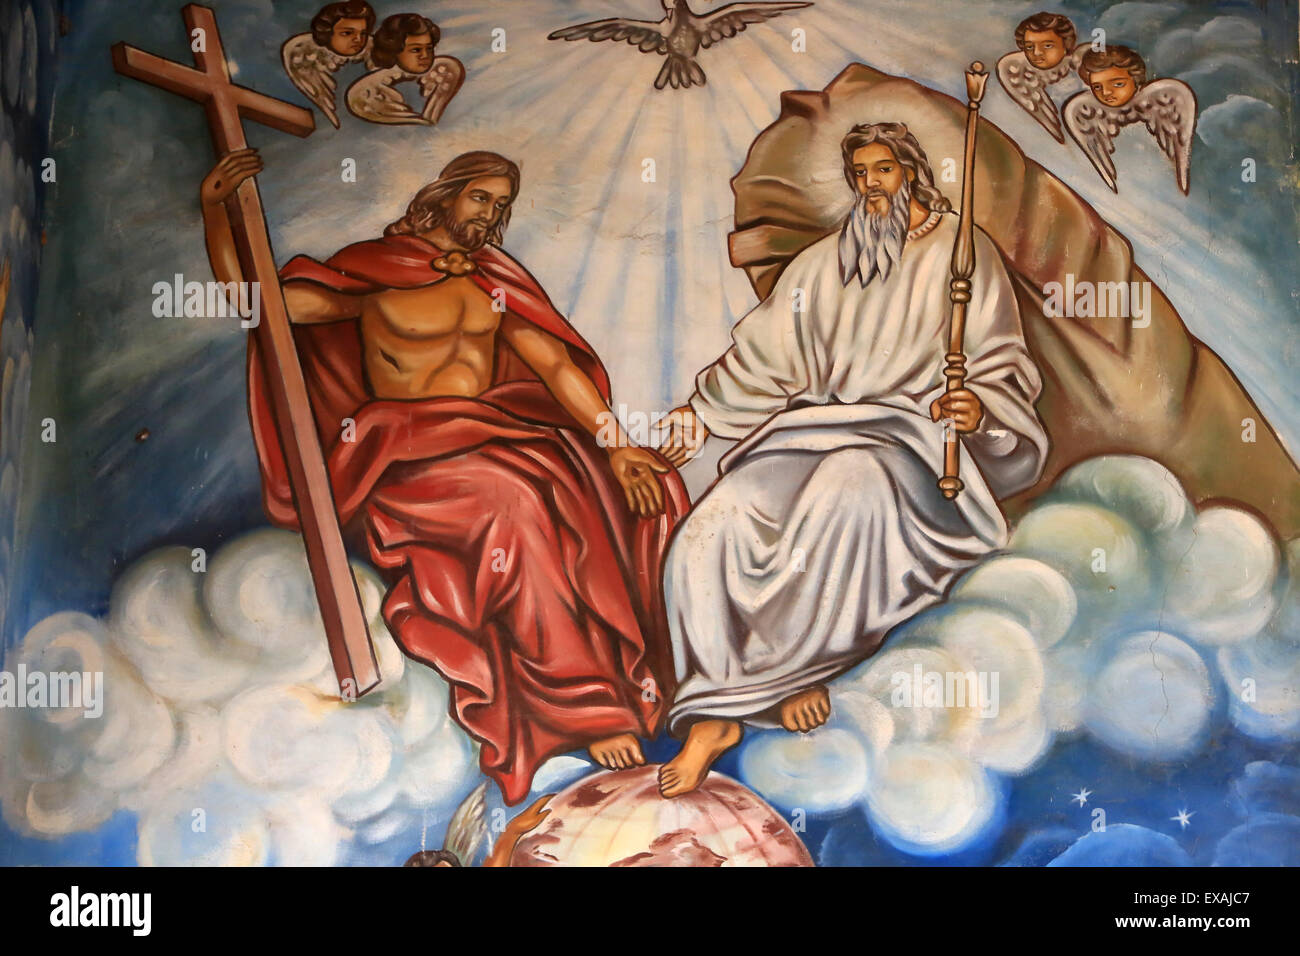 Holy Trinity of the Father, the Son and the Holy Spirit. St. Peter and Paul Cathedral, Aneho, Togo, West Africa, - Stock Image